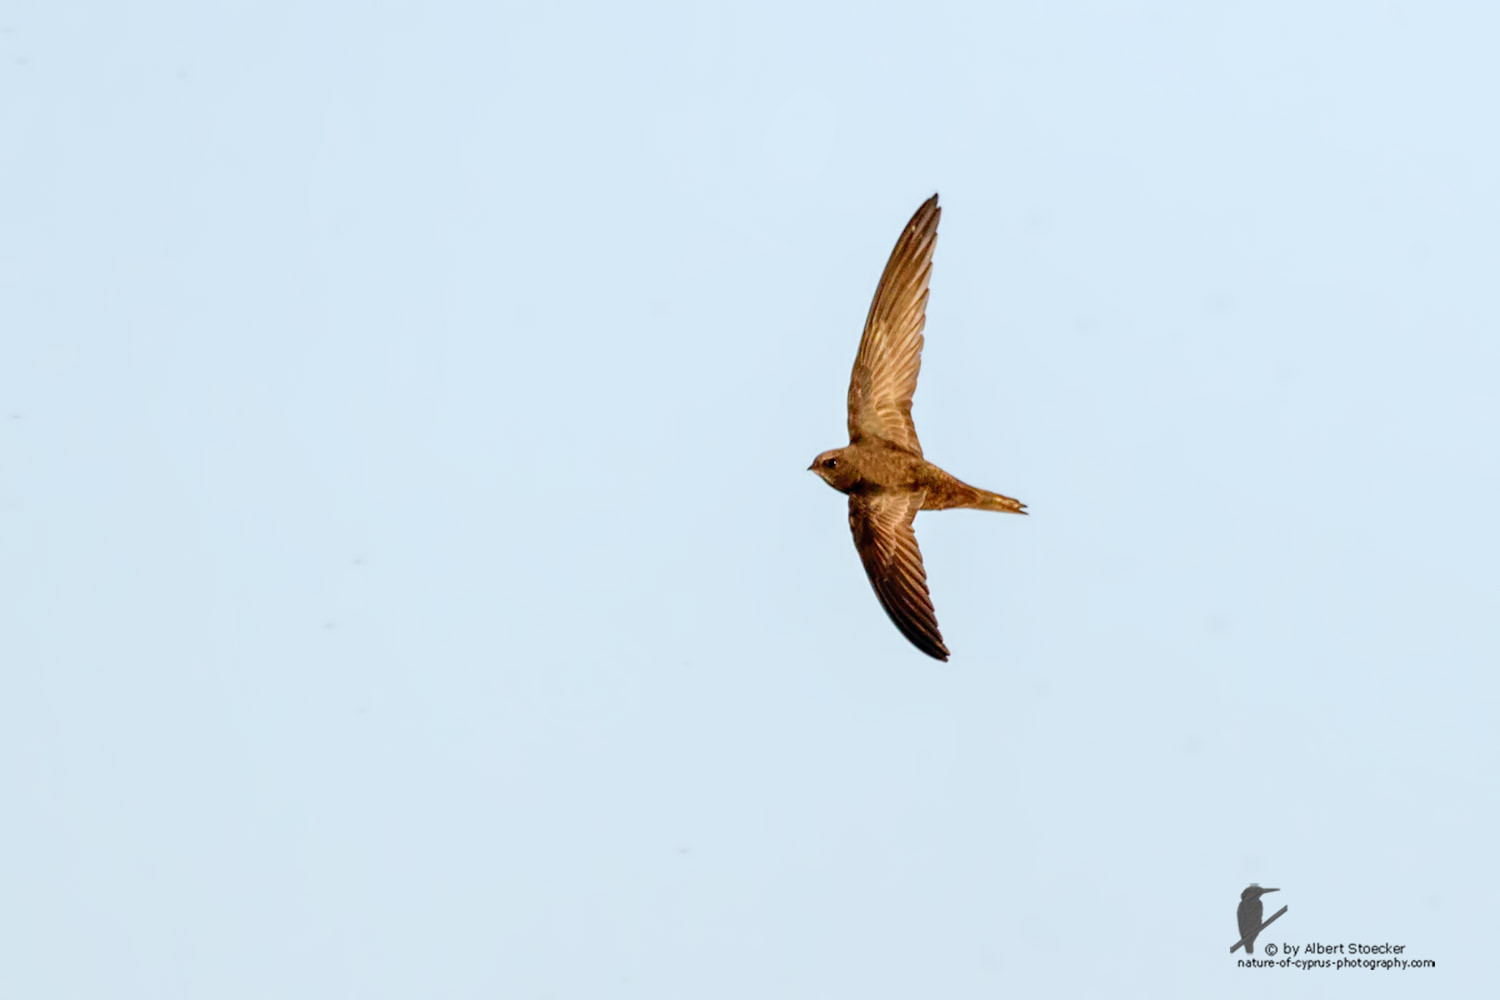 Apus apus - Common Swift - Mauersegler, Cyprus, Zakai Marsh, March 2016